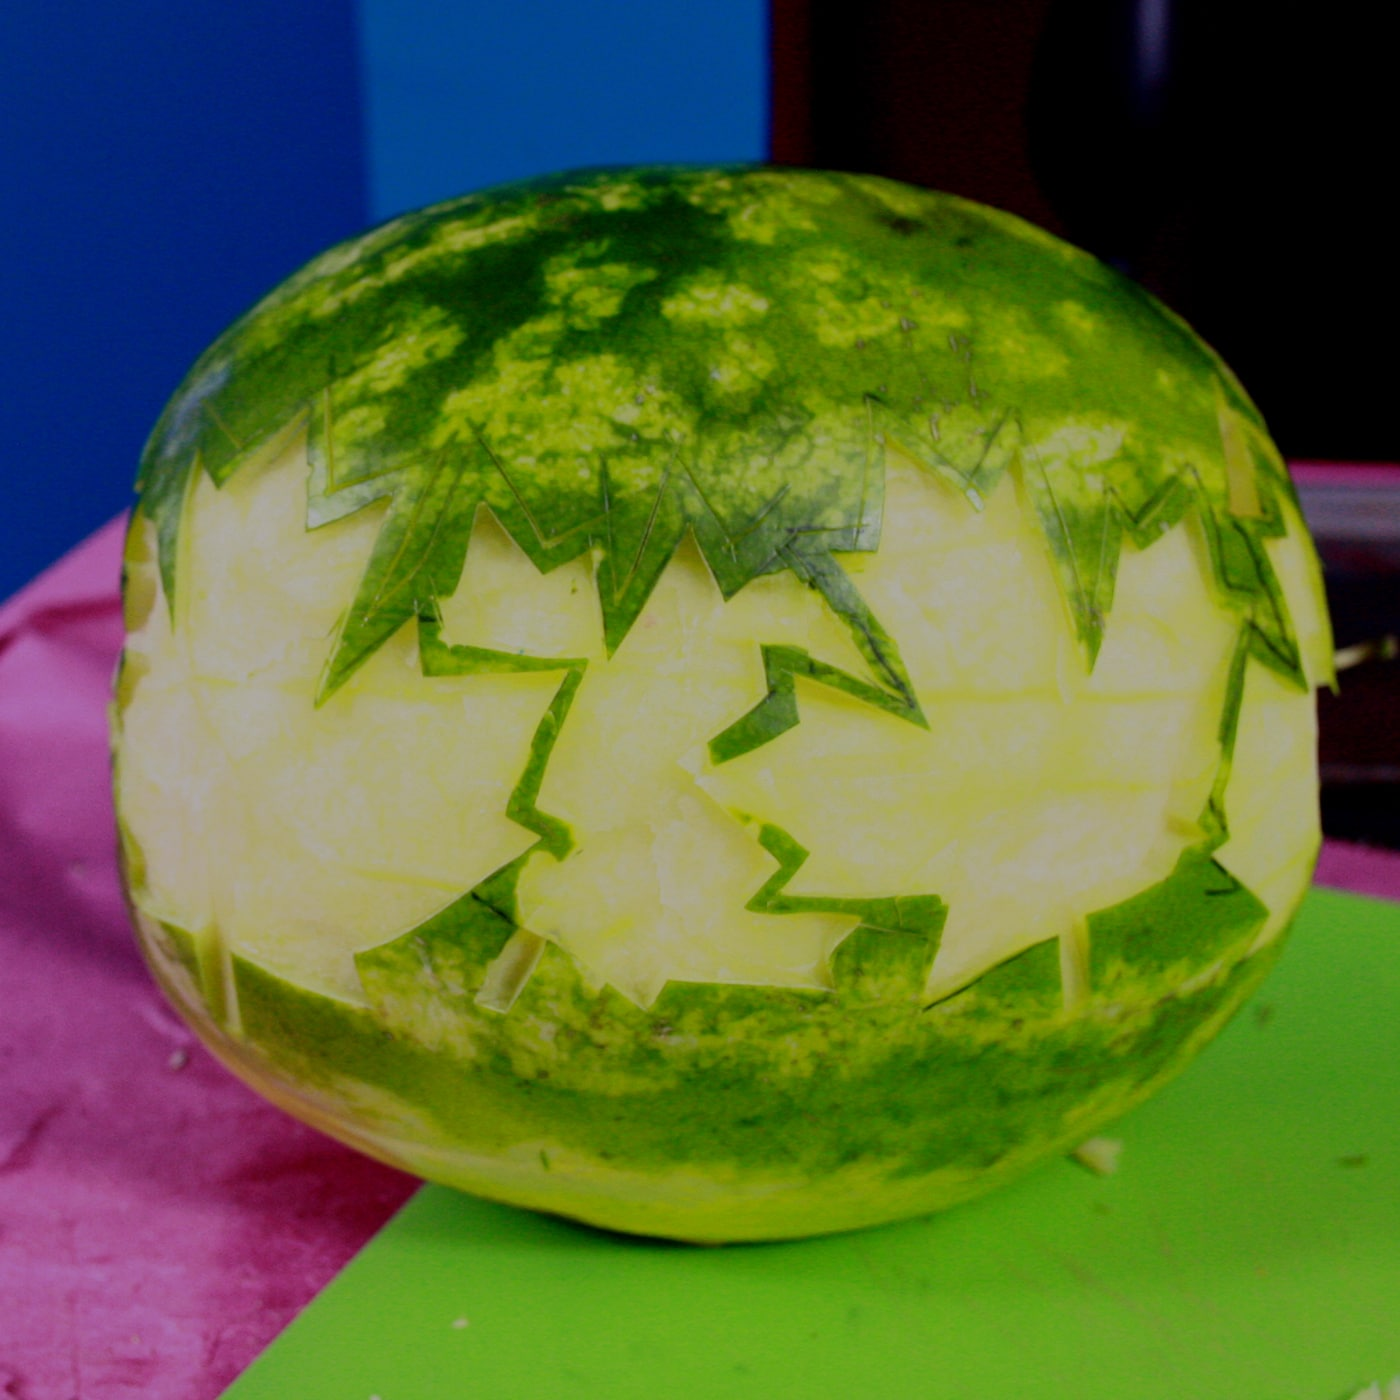 A border of several white maple leaves have been carved into the watermelon.